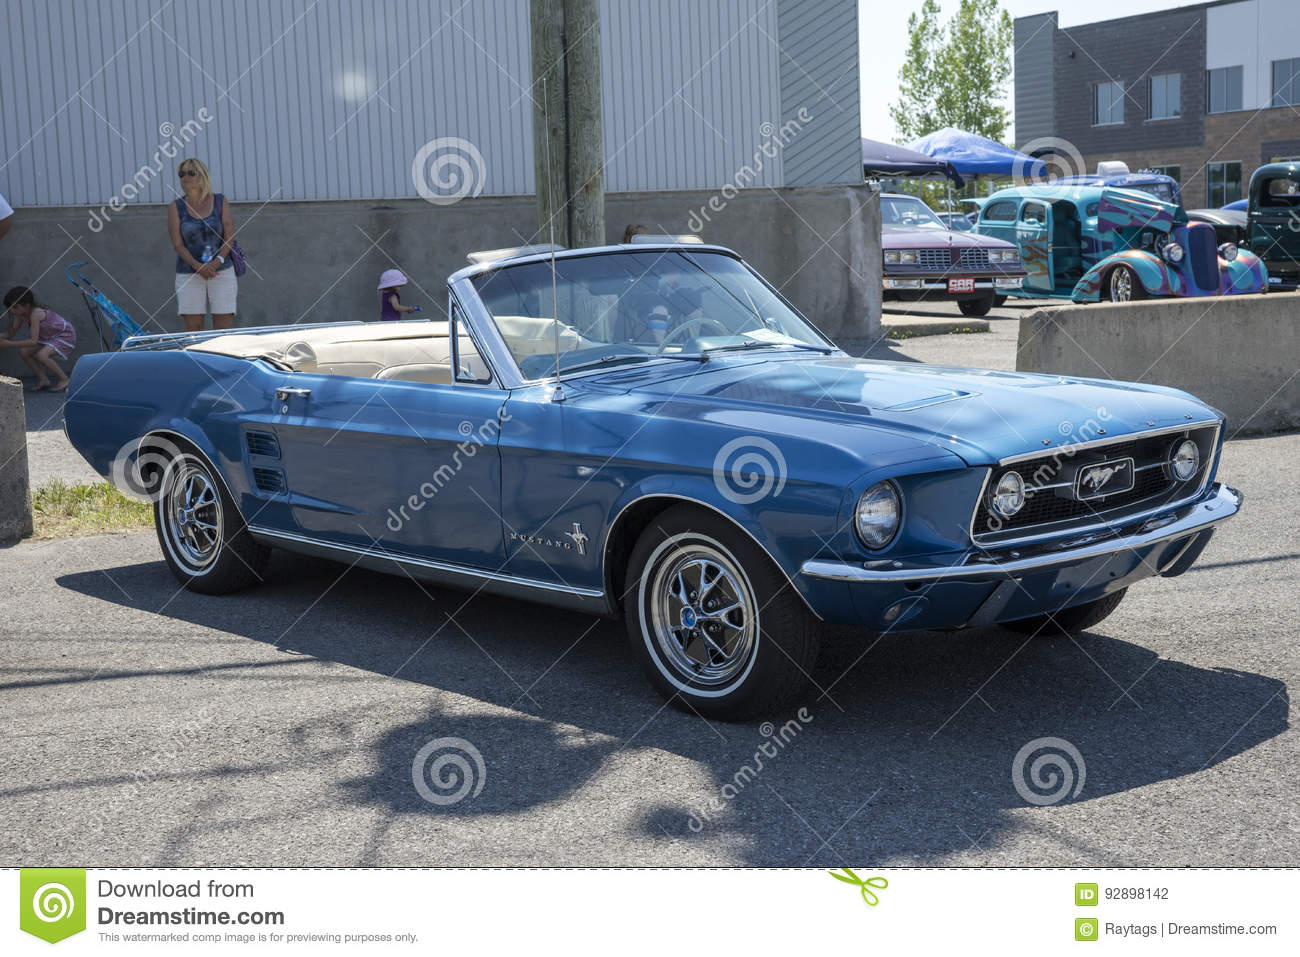 1967 mustang convertible editorial photography  Image of paint